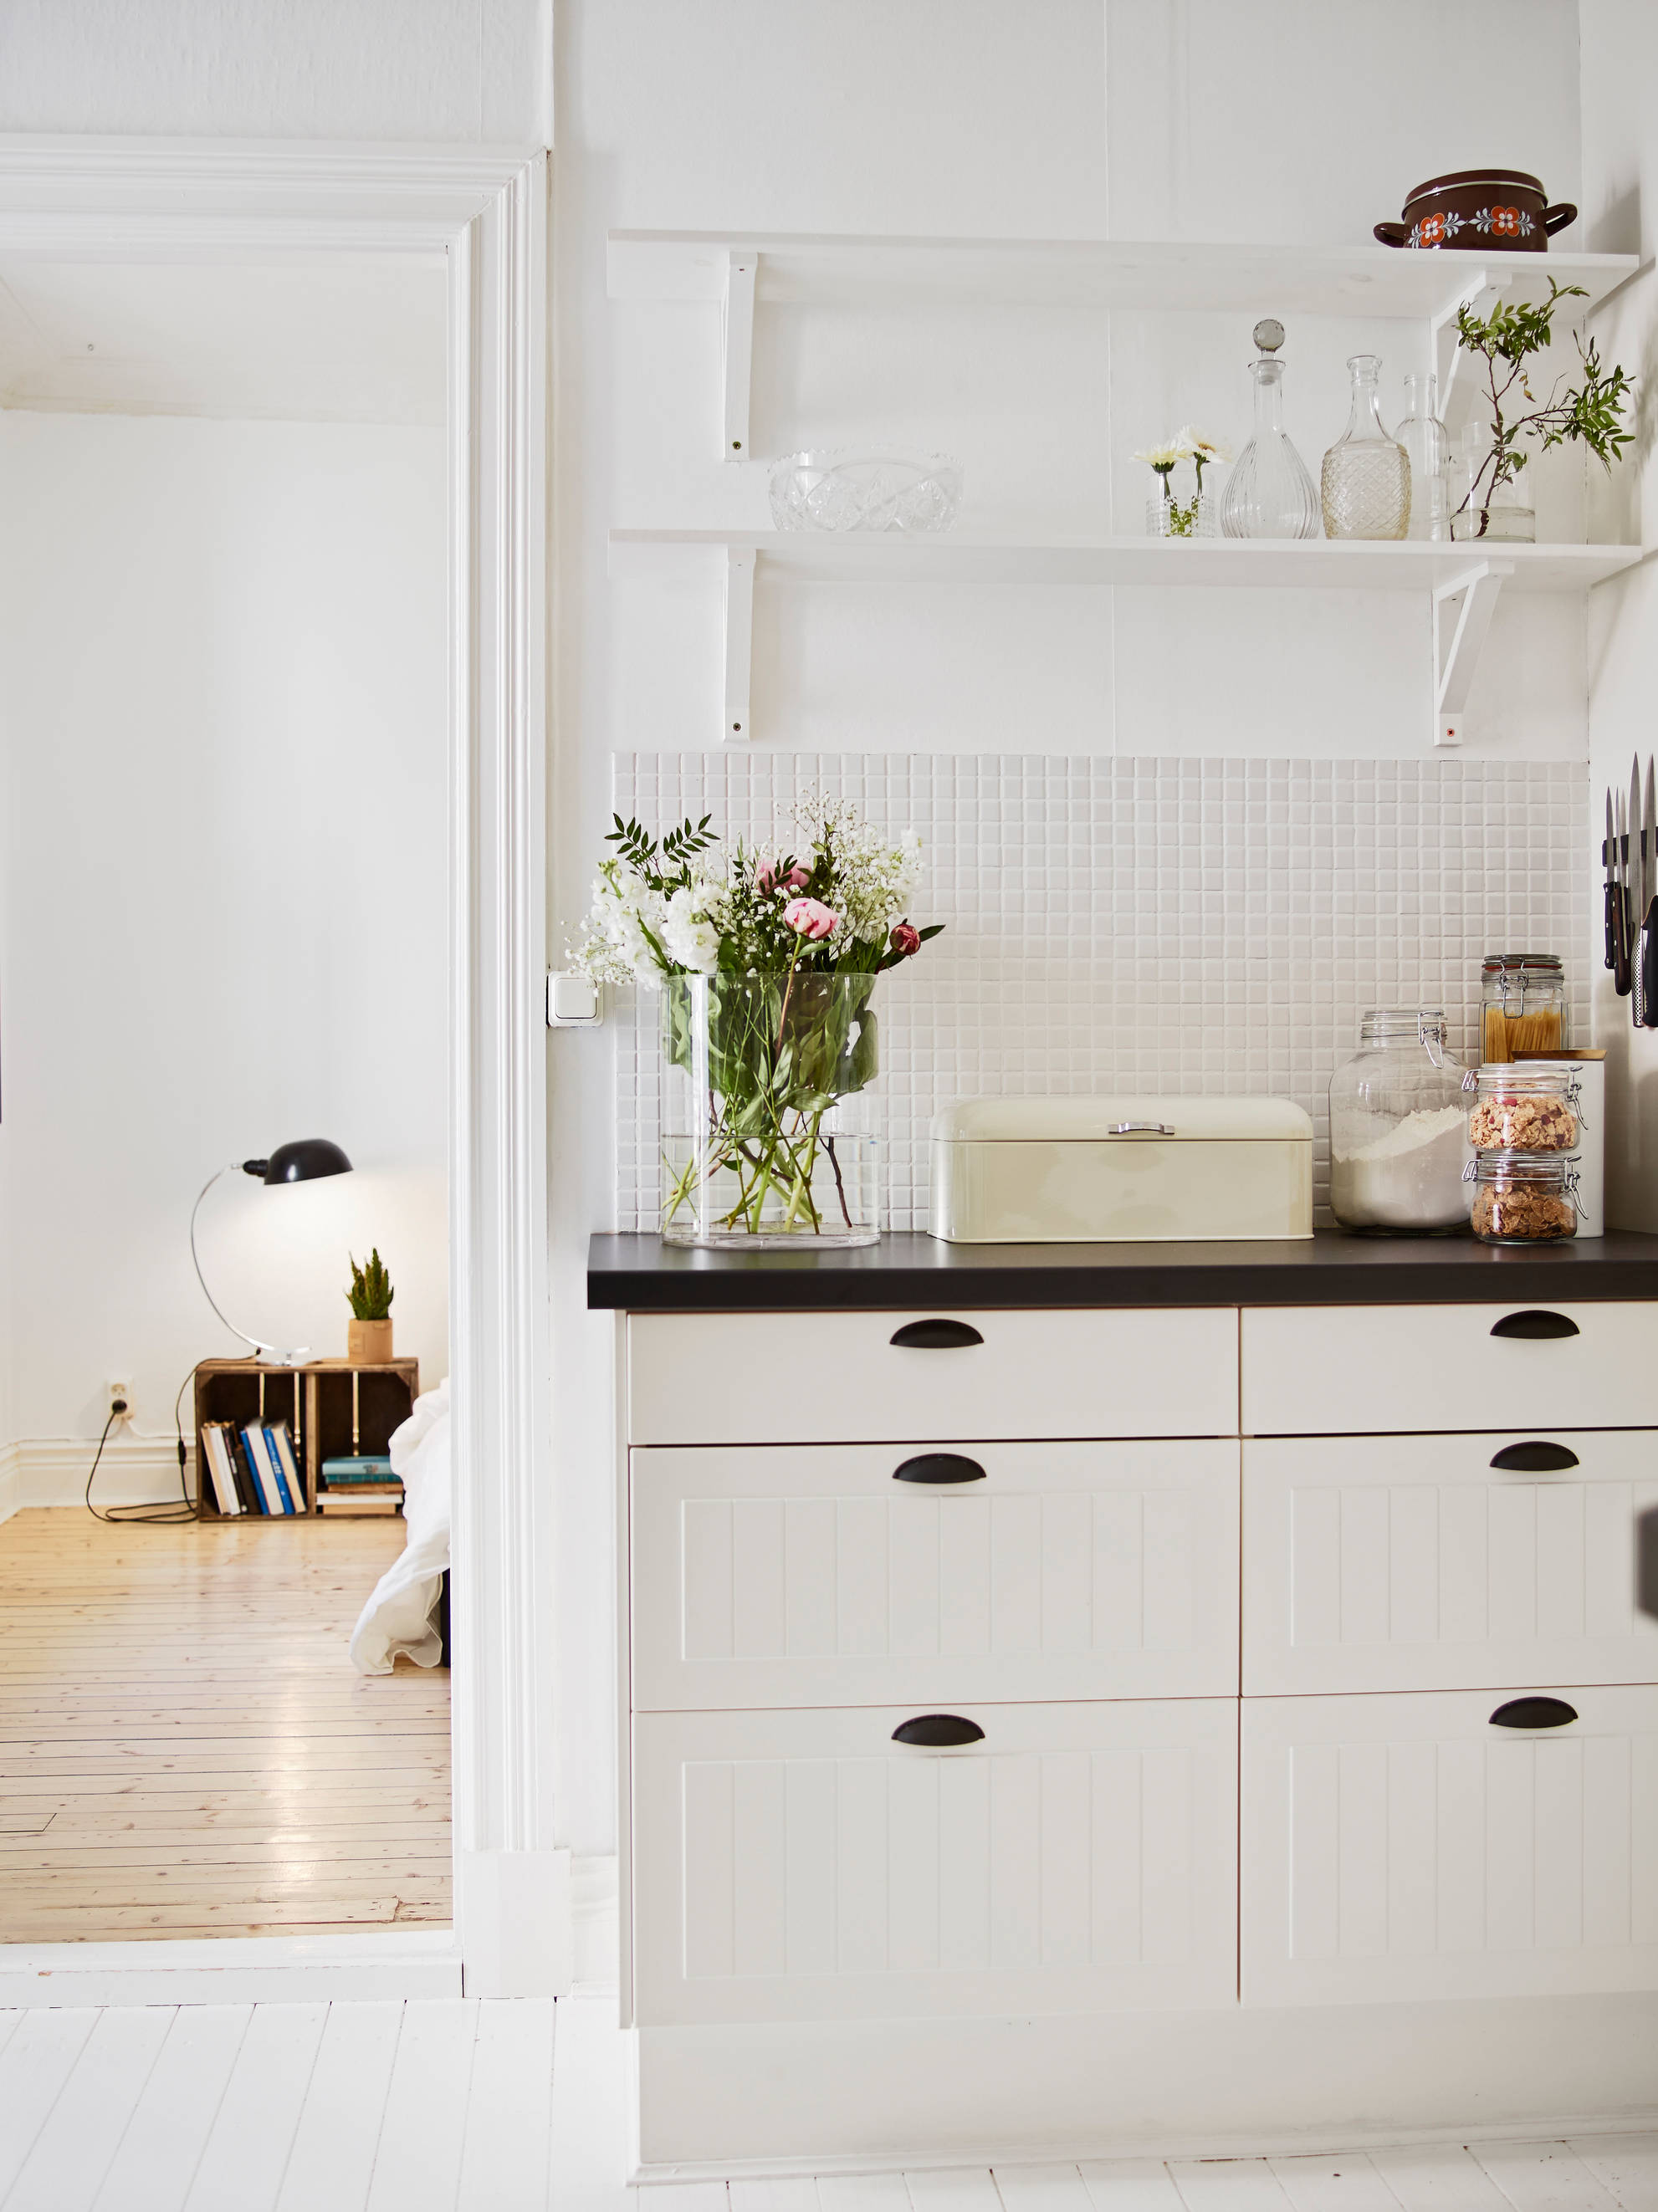 How To Mix Scandinavian Designs With What You Already Have